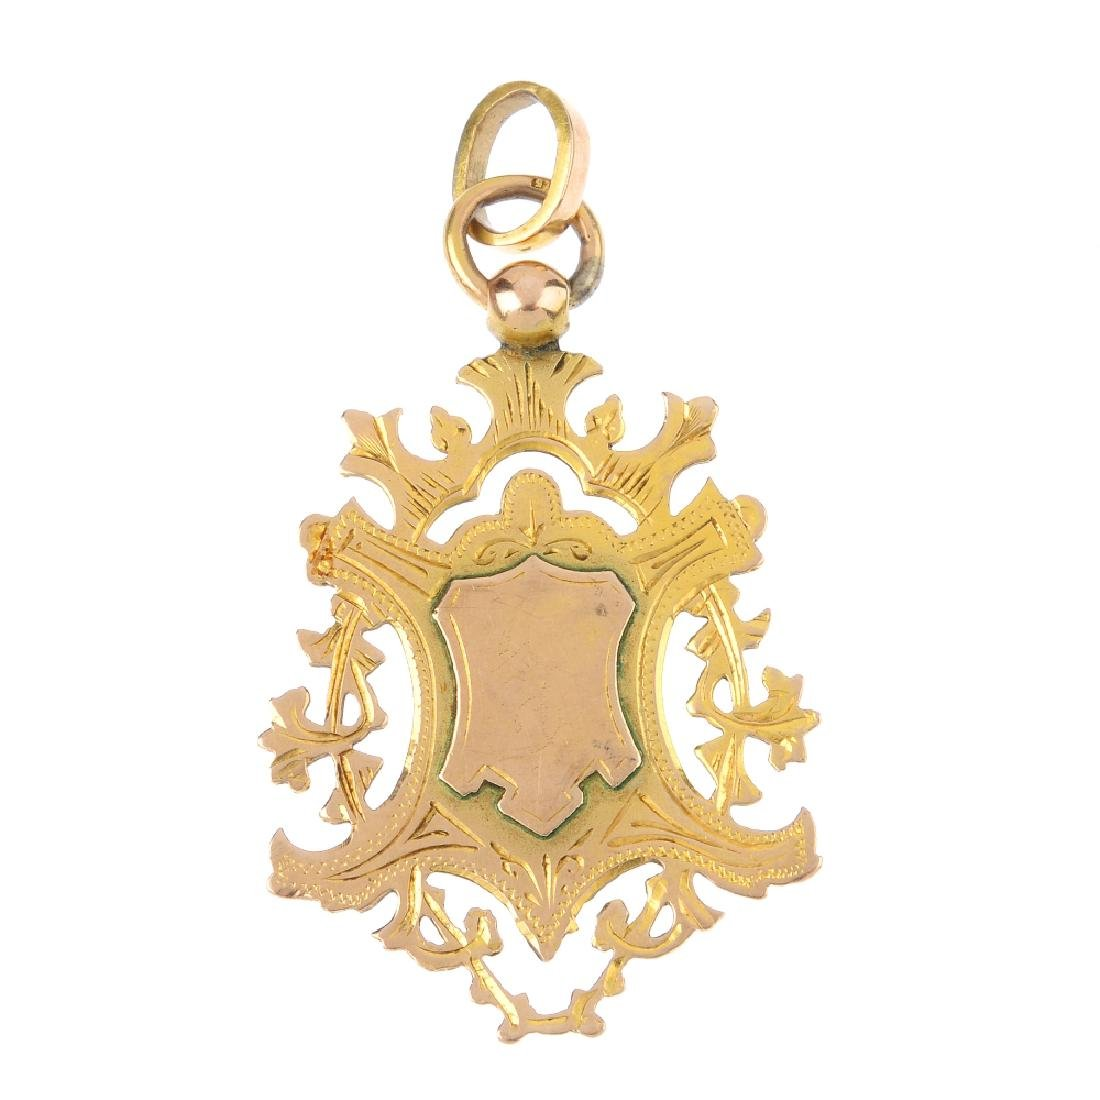 A late Victorian 9ct gold medallion. The vacant